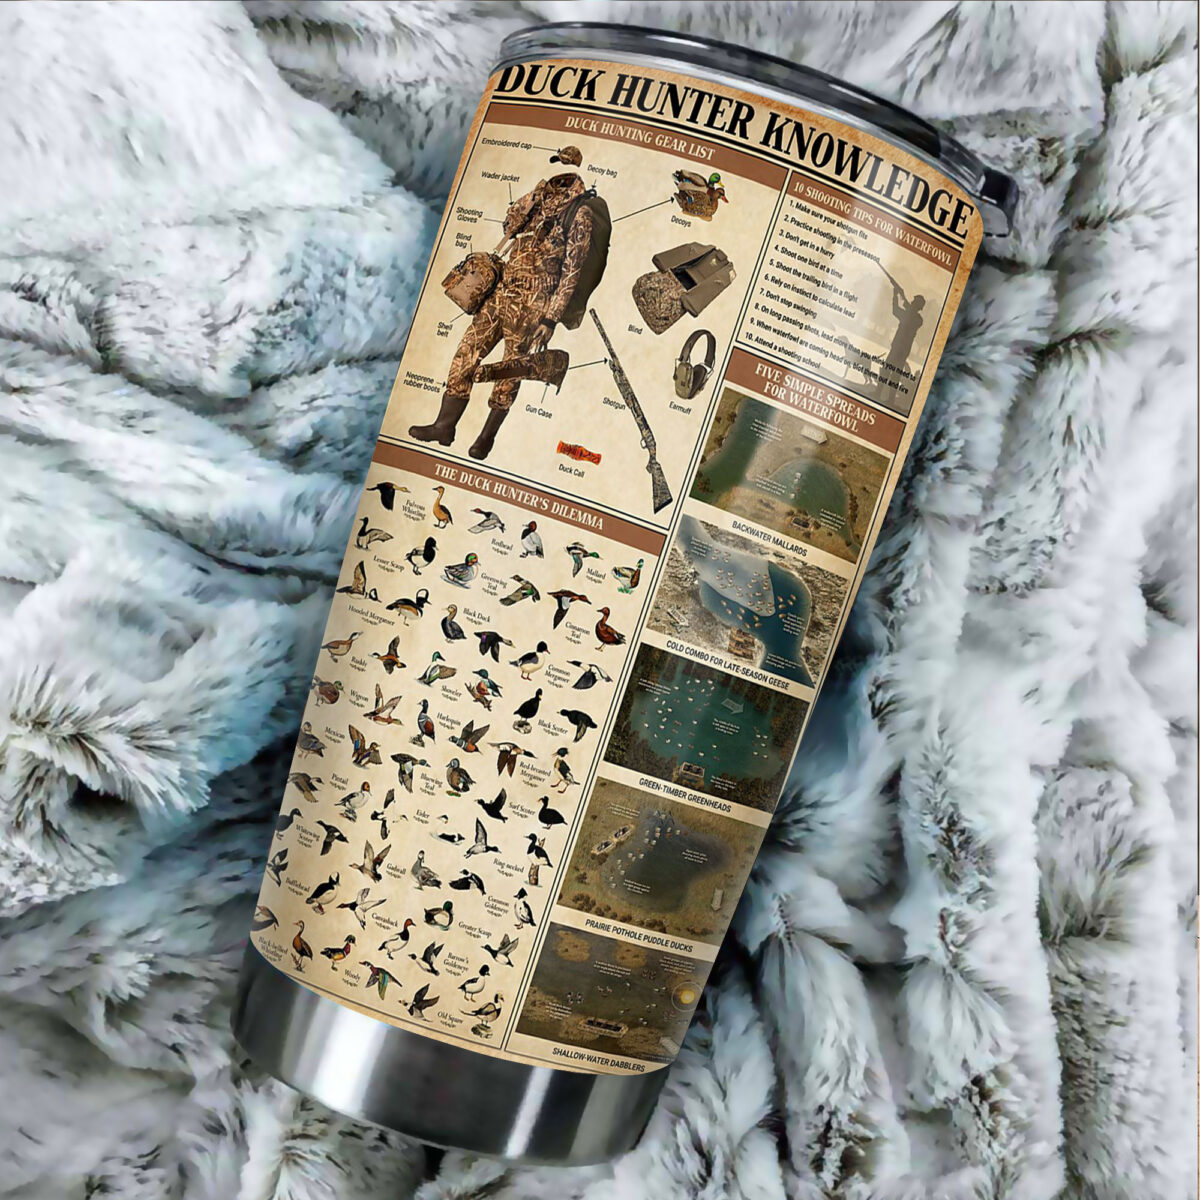 duck hunting knowledge all over print stainless steel tumbler 5